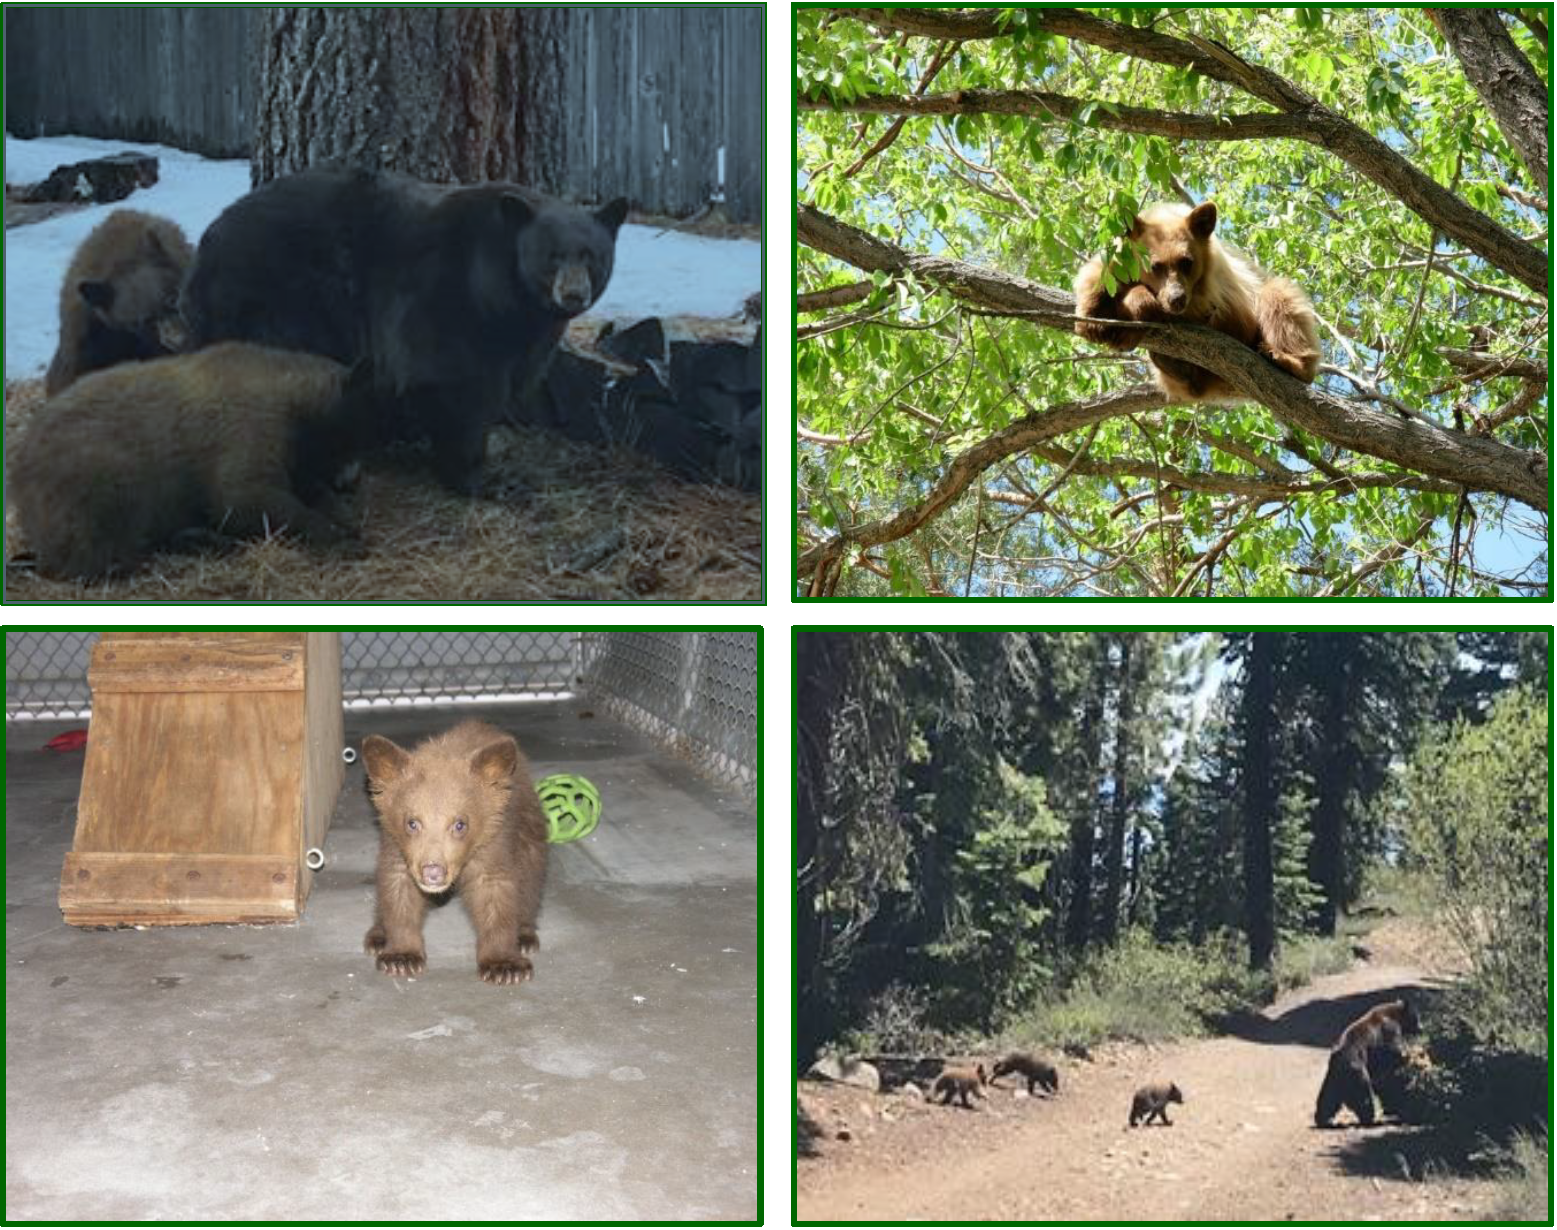 Photo captions/credit L-R: Black bear sow with yearlings (medium dog size) courtesy CDFW; Yearling on its own in tree (medium dog size) courtesy NDOW; Cub of the year (cat size) in a rehabilitation facility courtesy CDFW; and Sow with cubs of the year (cat size) courtesy David Braun, LTBMU.